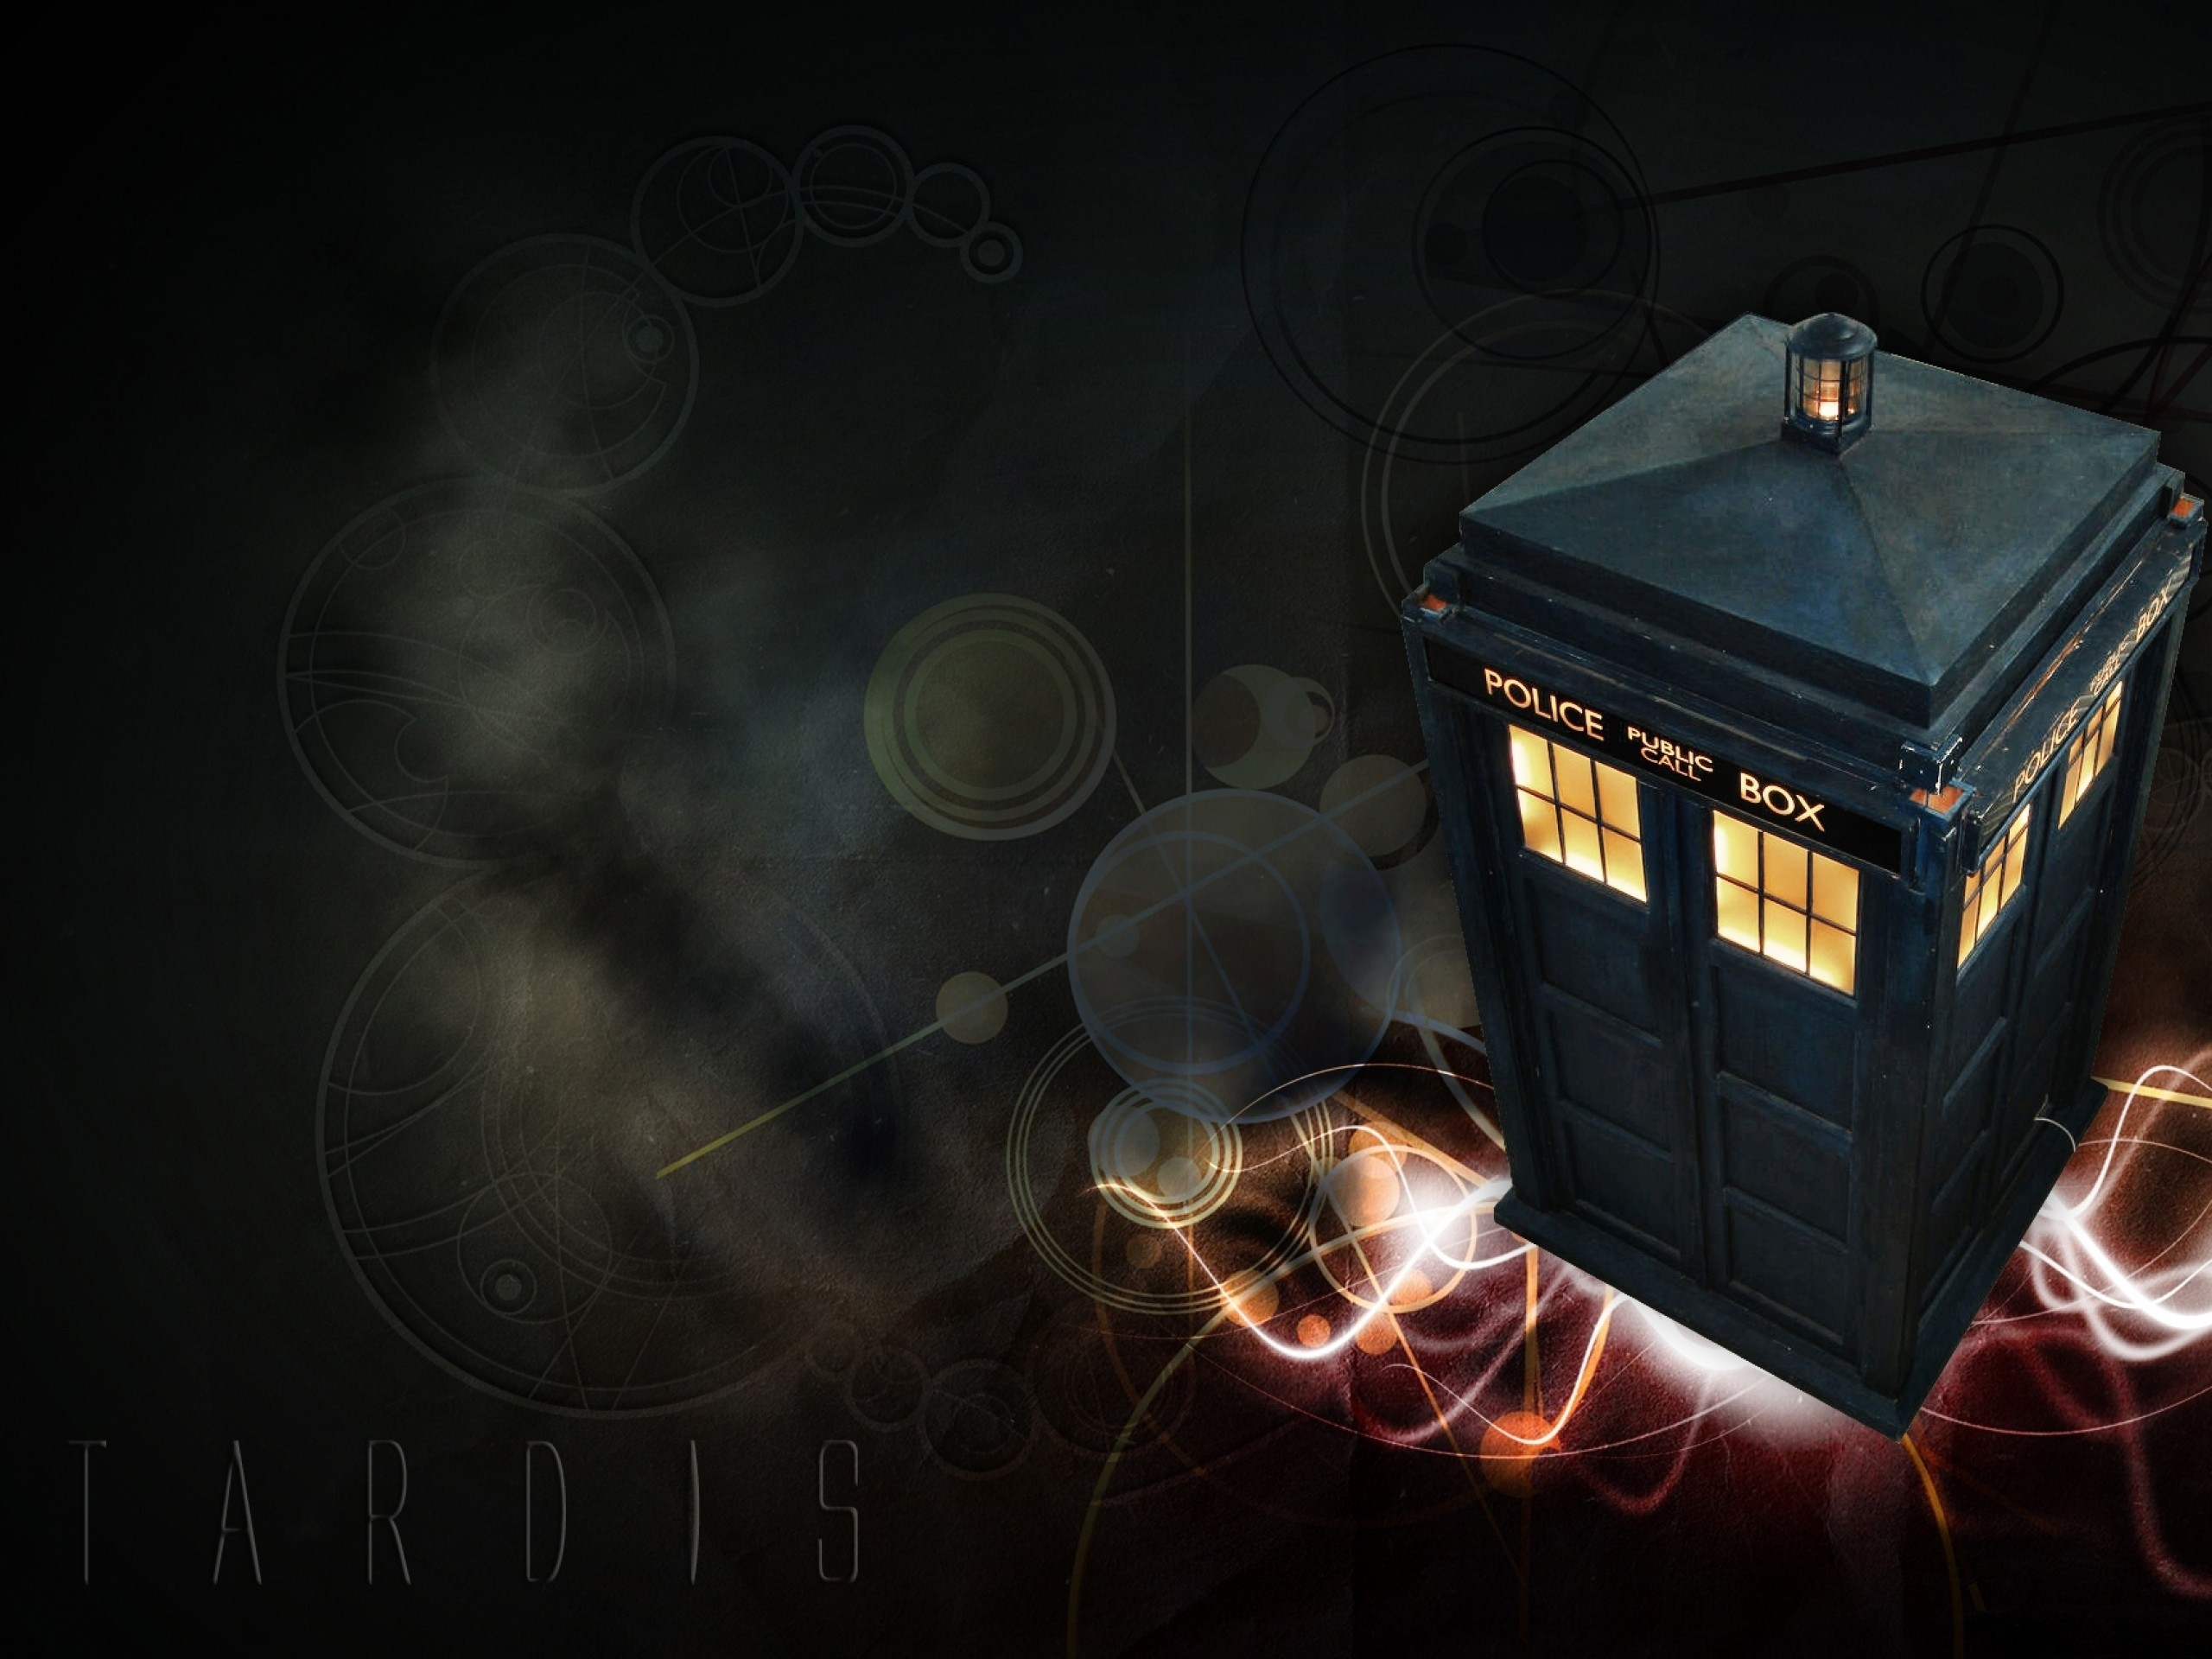 Doctor Who, The Doctor, TARDIS